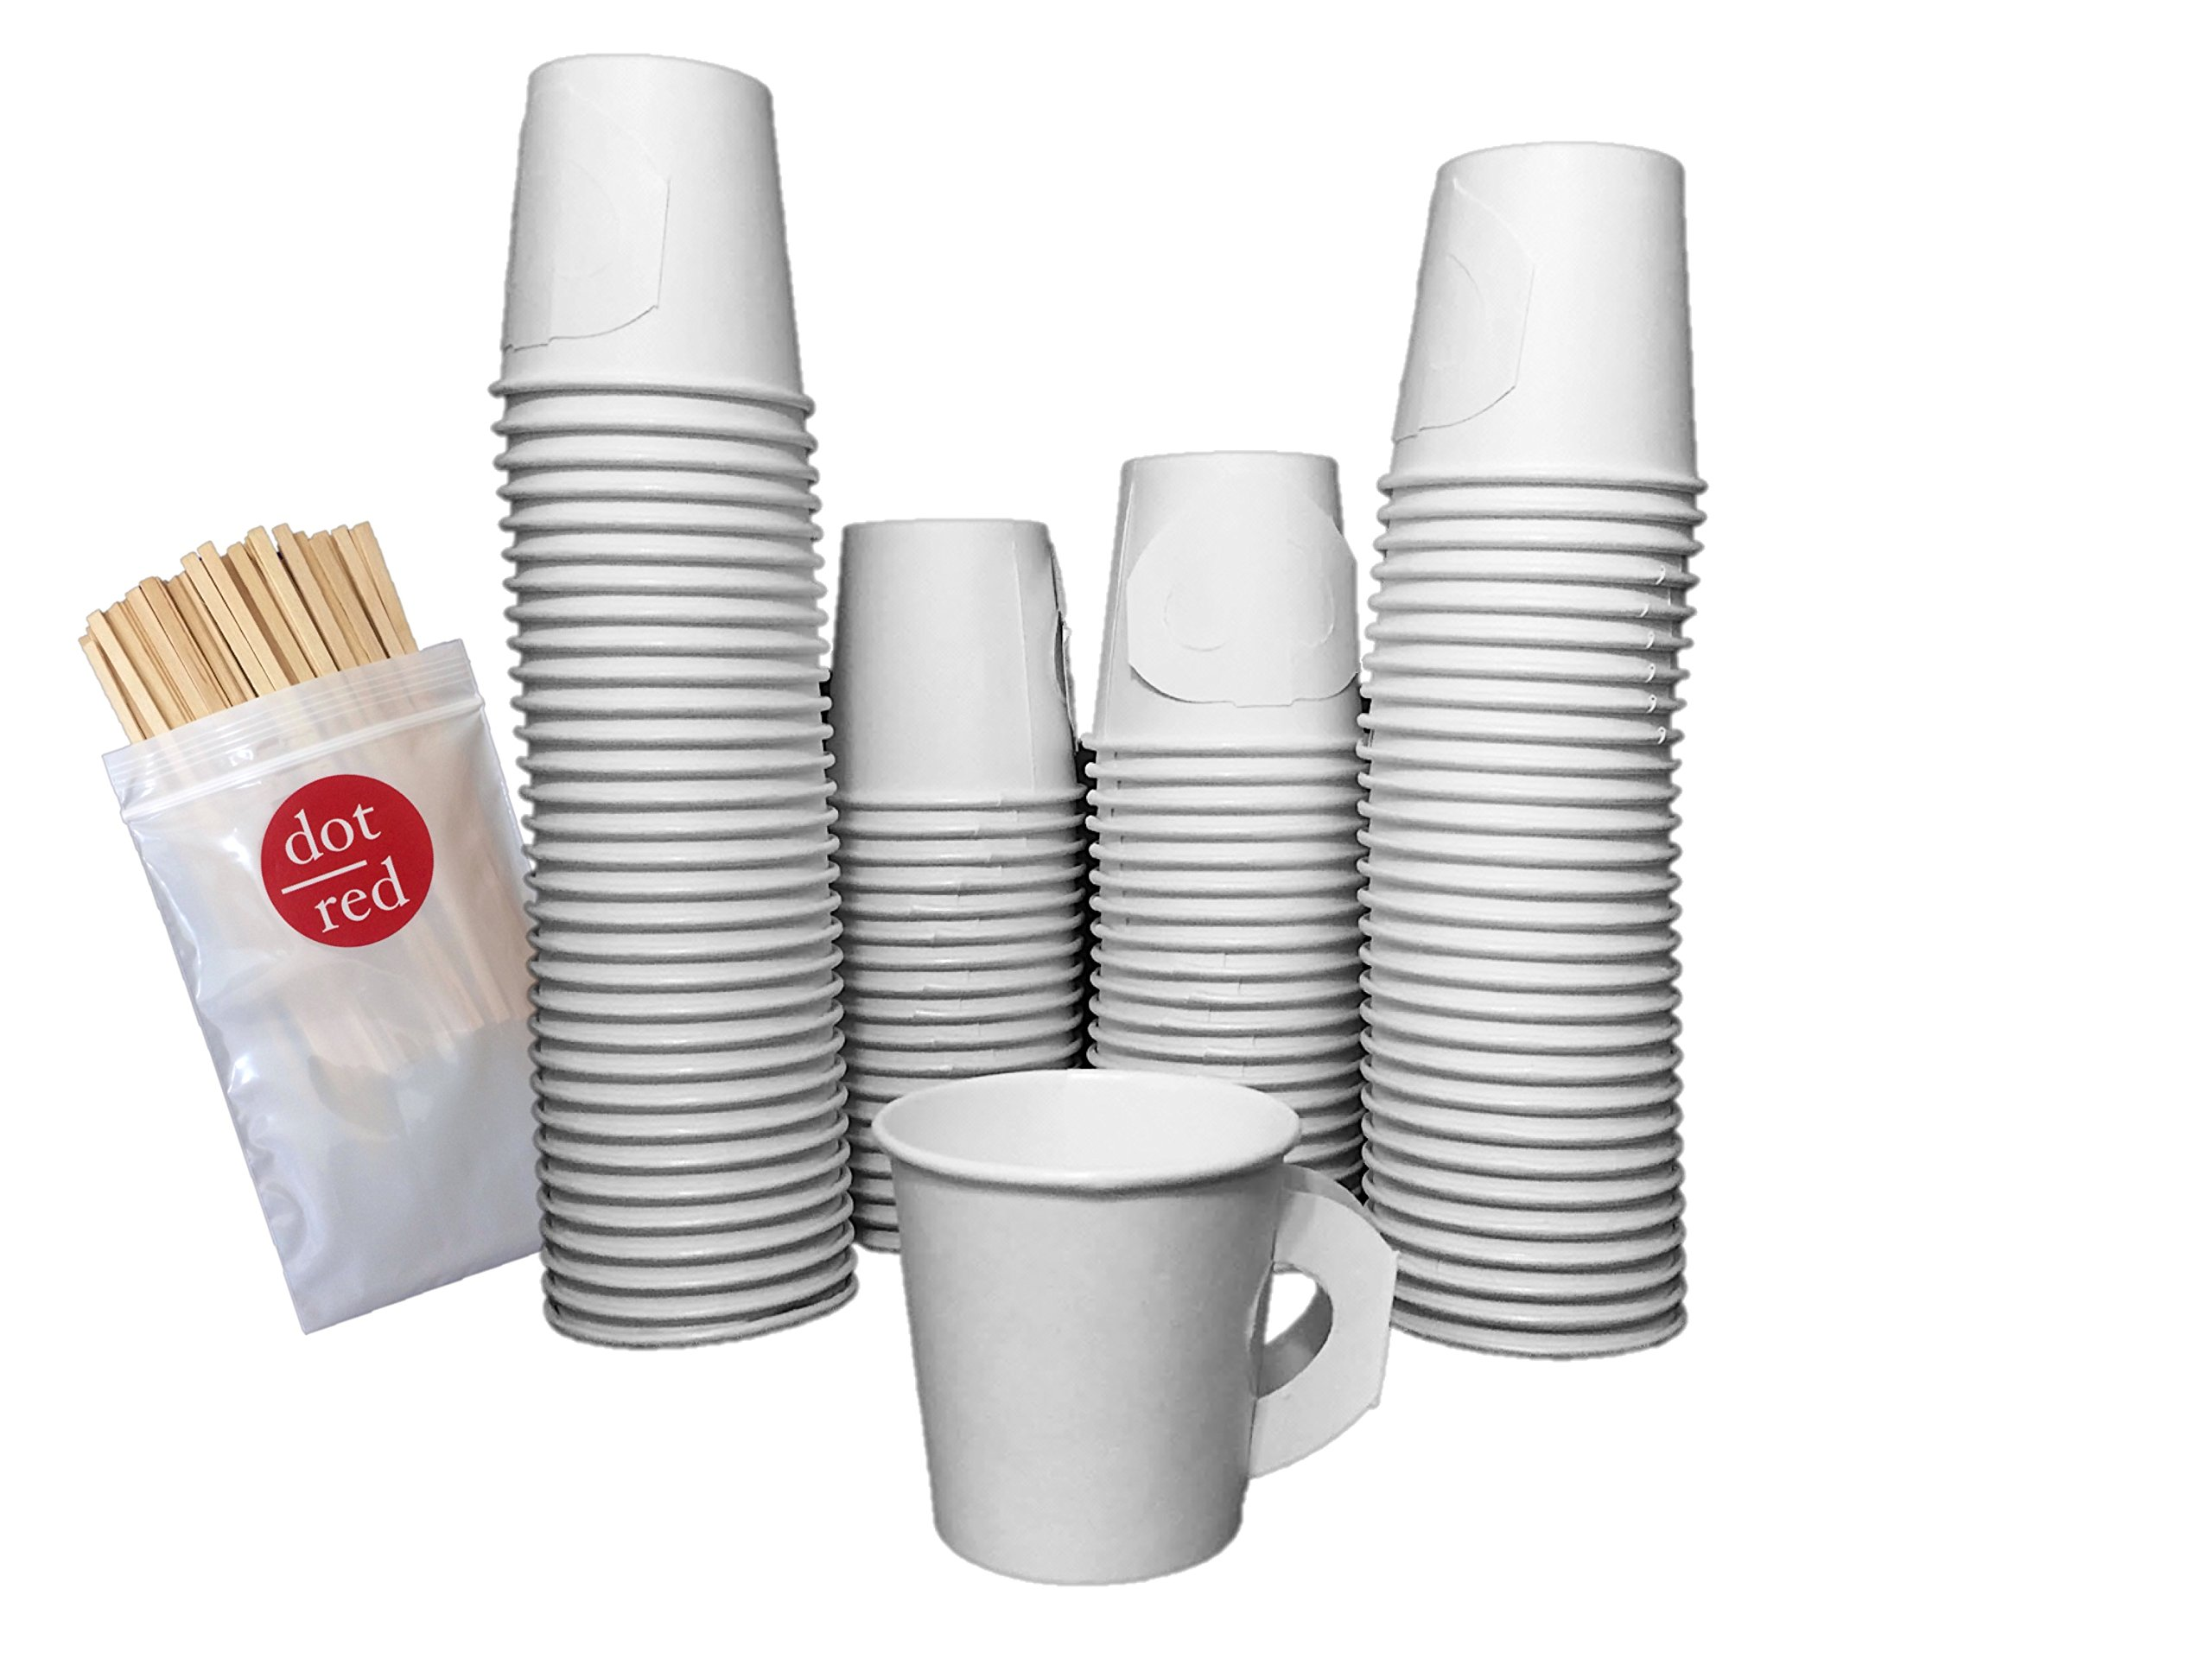 Dot Red - (100 Pack Each) Solo 4 oz. Espresso Cup with Handle (no sleeves needed!) - Leak Resistant Paper Hot Cup 374HW-2050, Dot Red 5.5'' Wood Stirrers - Solo Coffee Cup Bundle (100 Pack)